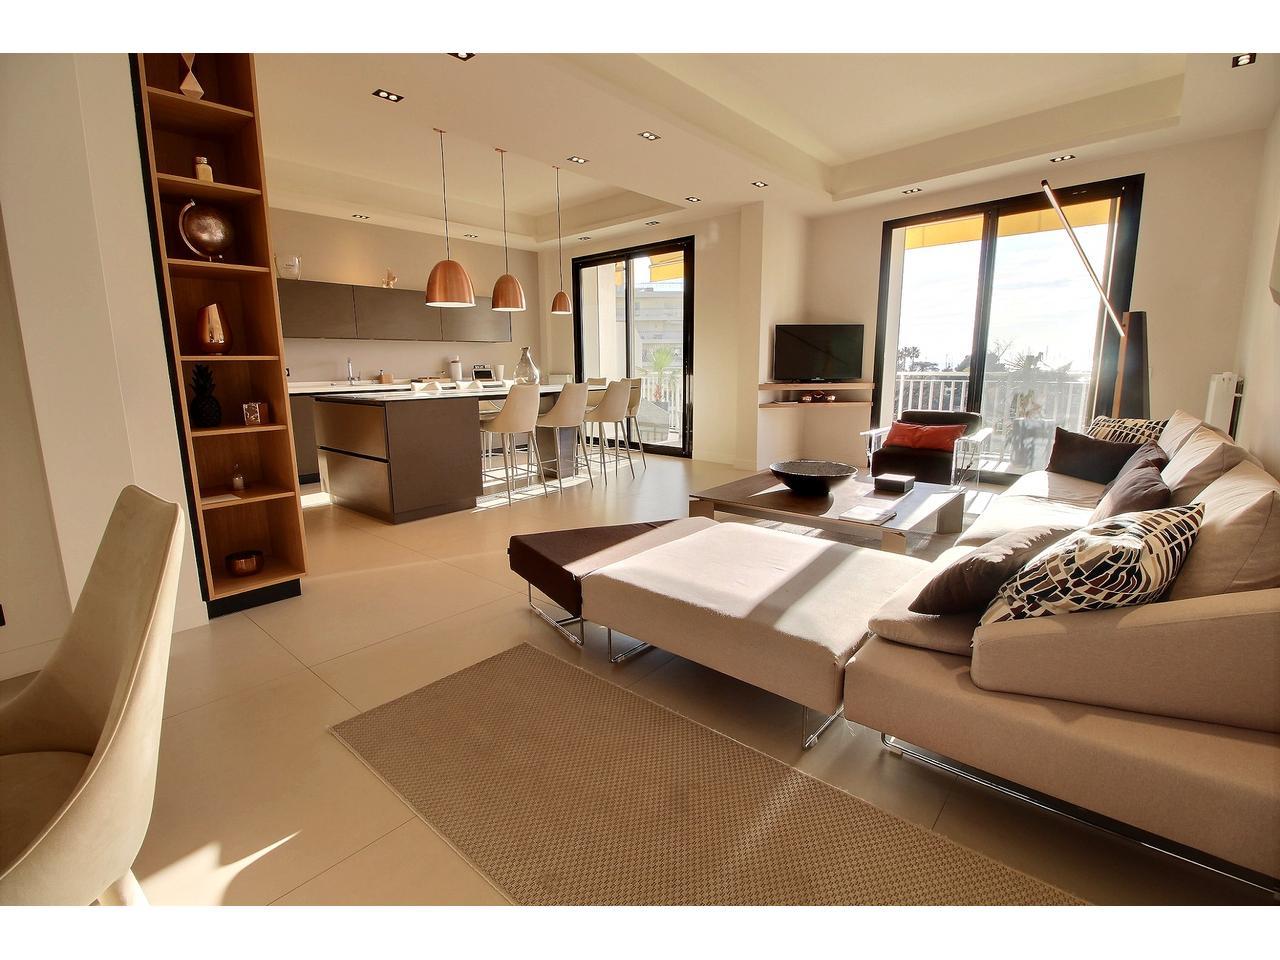 Cannes,Boulevard Croisette,4 Bedrooms Bedrooms,4 BathroomsBathrooms,Apartment,Cannes,Boulevard Croisette,3,1020